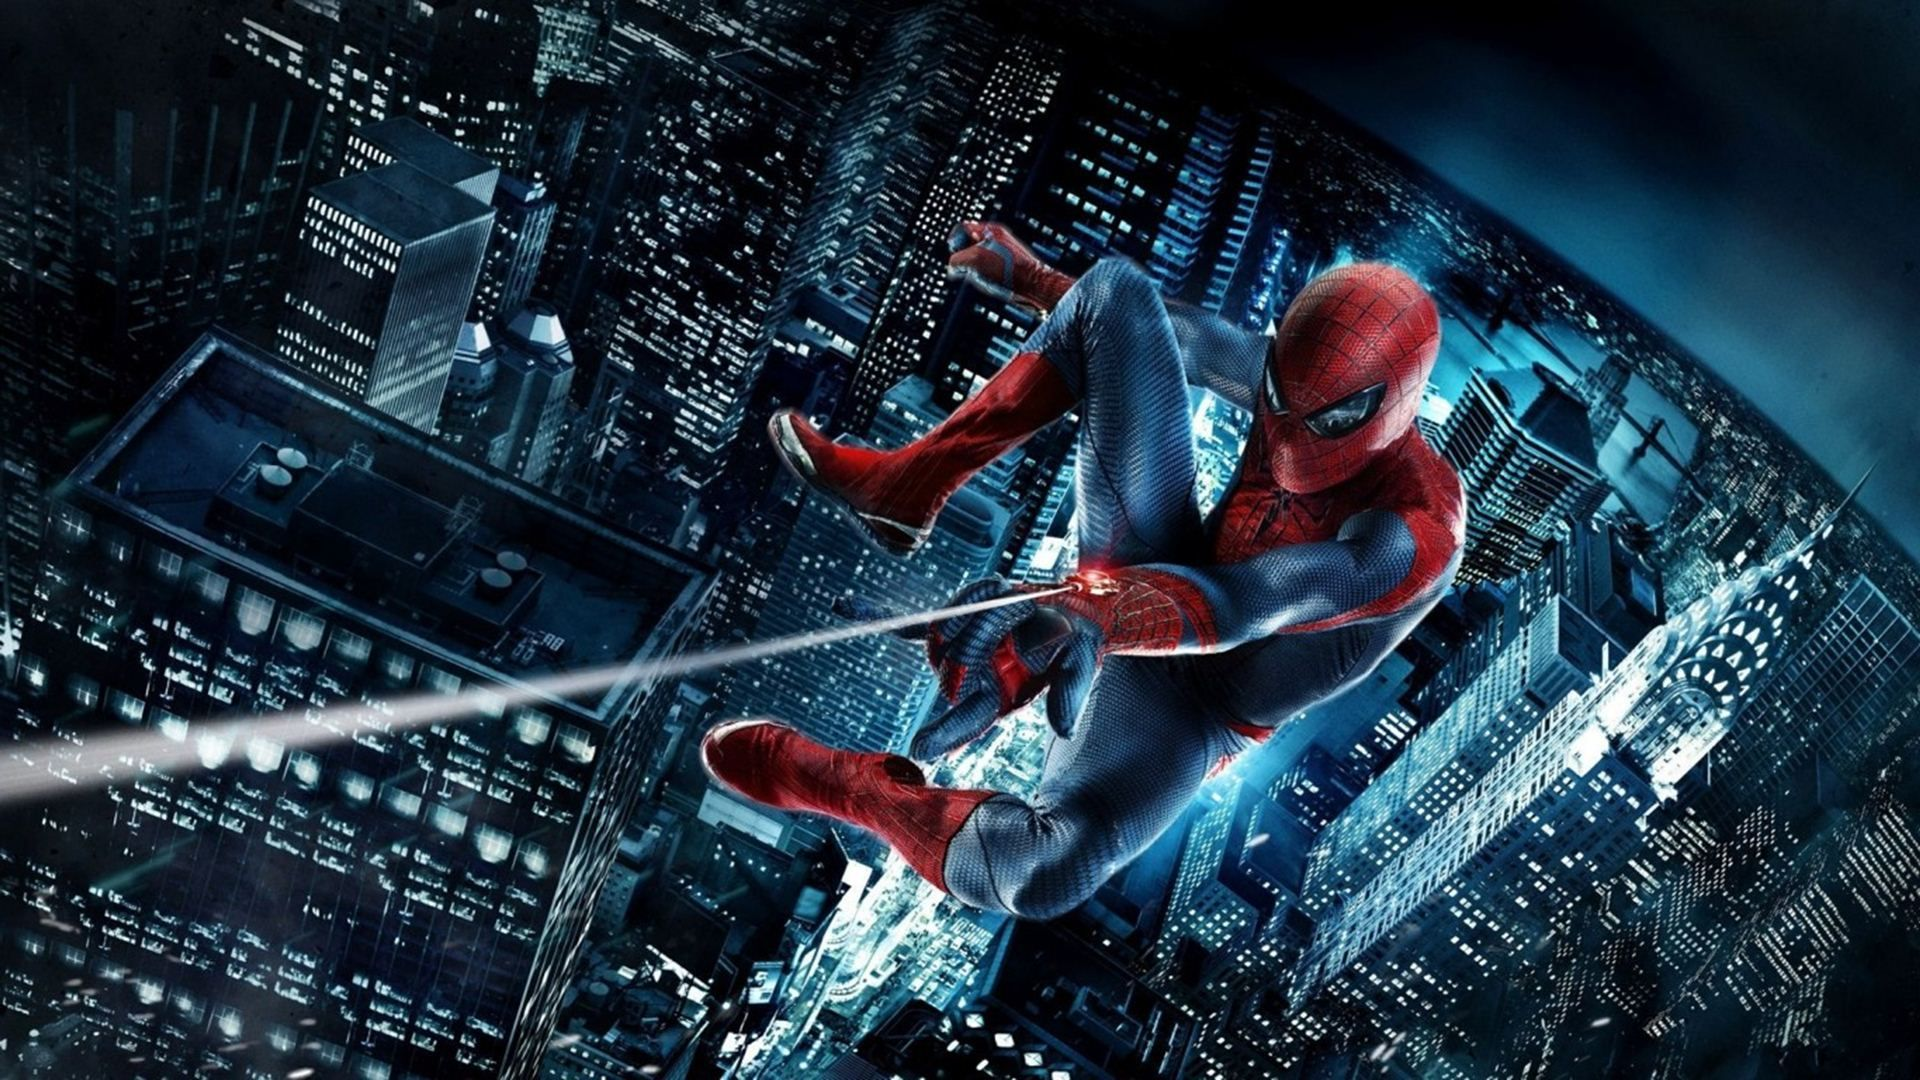 Amazing SpiderMan Live WP Android Apps on Google Play 1024